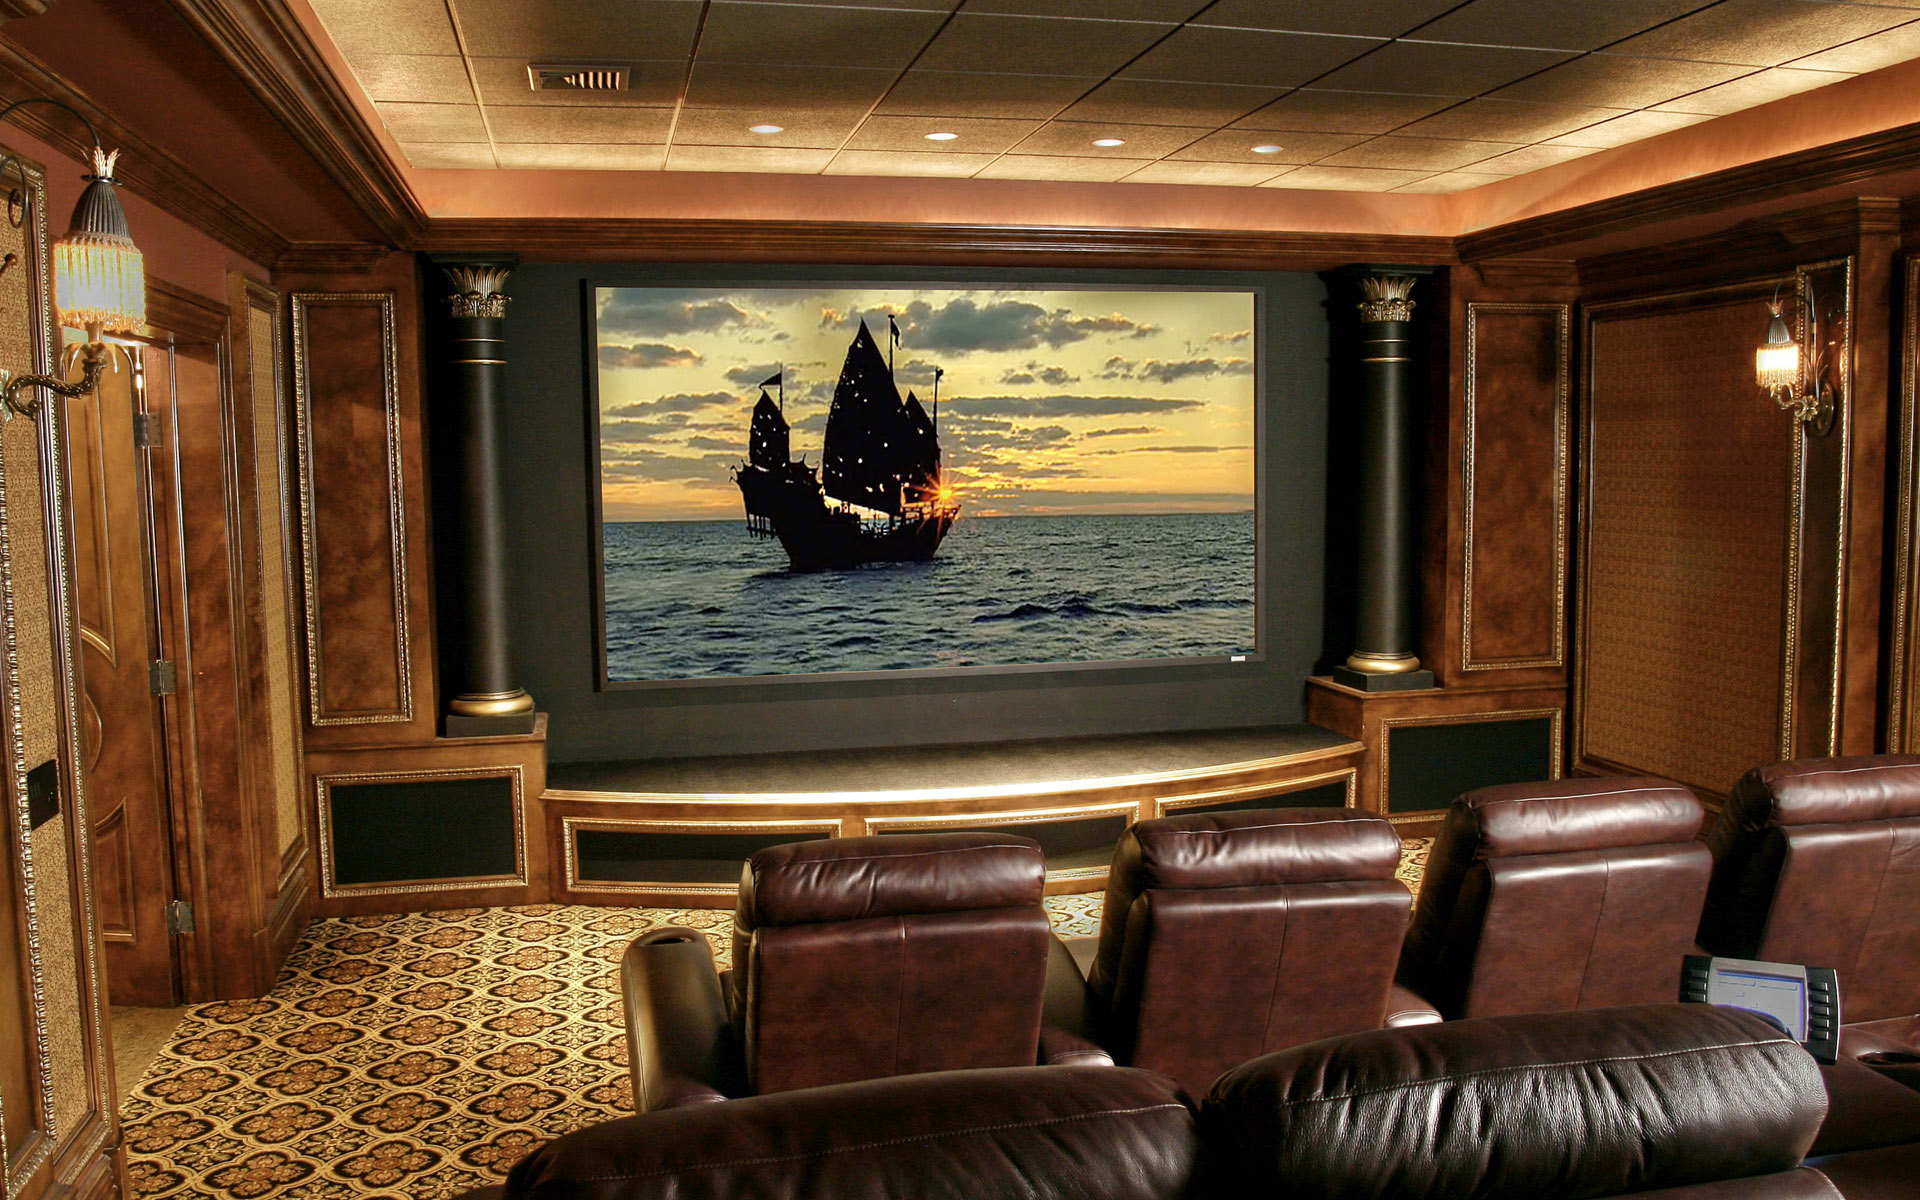 Easy Entertainment The NoFear MiniGuide to Home Theater Systems  The Fashionable Housewife